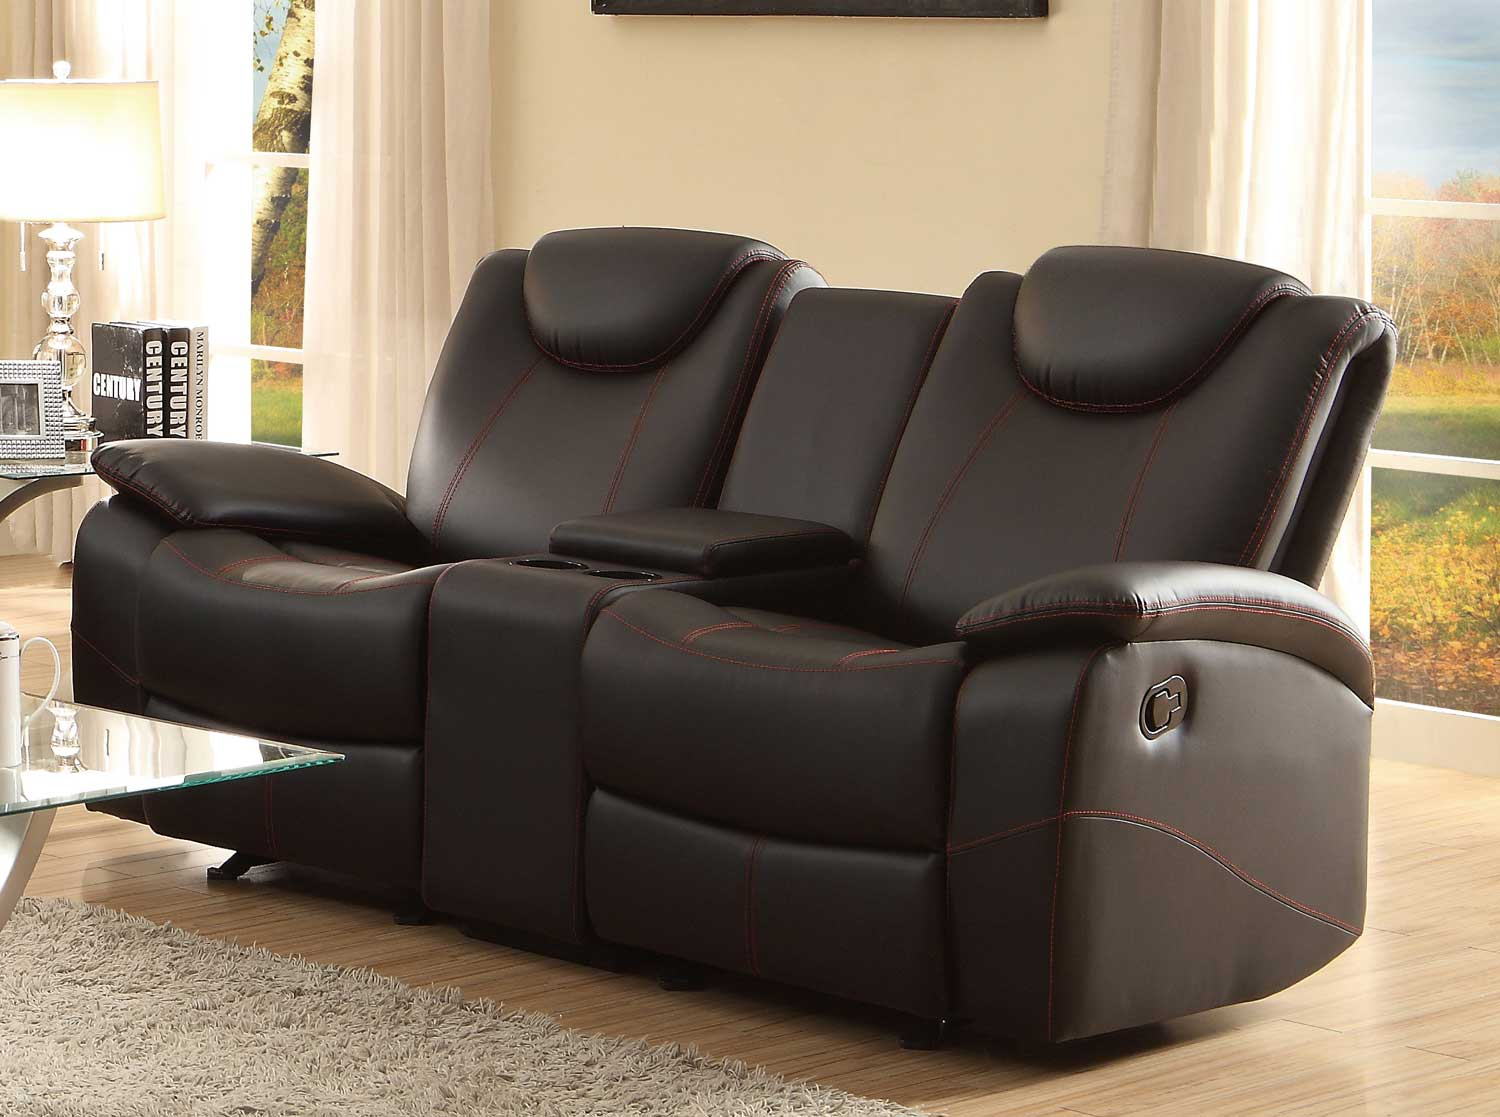 Homelegance Talbot Double Glider Reclining Love Seat With